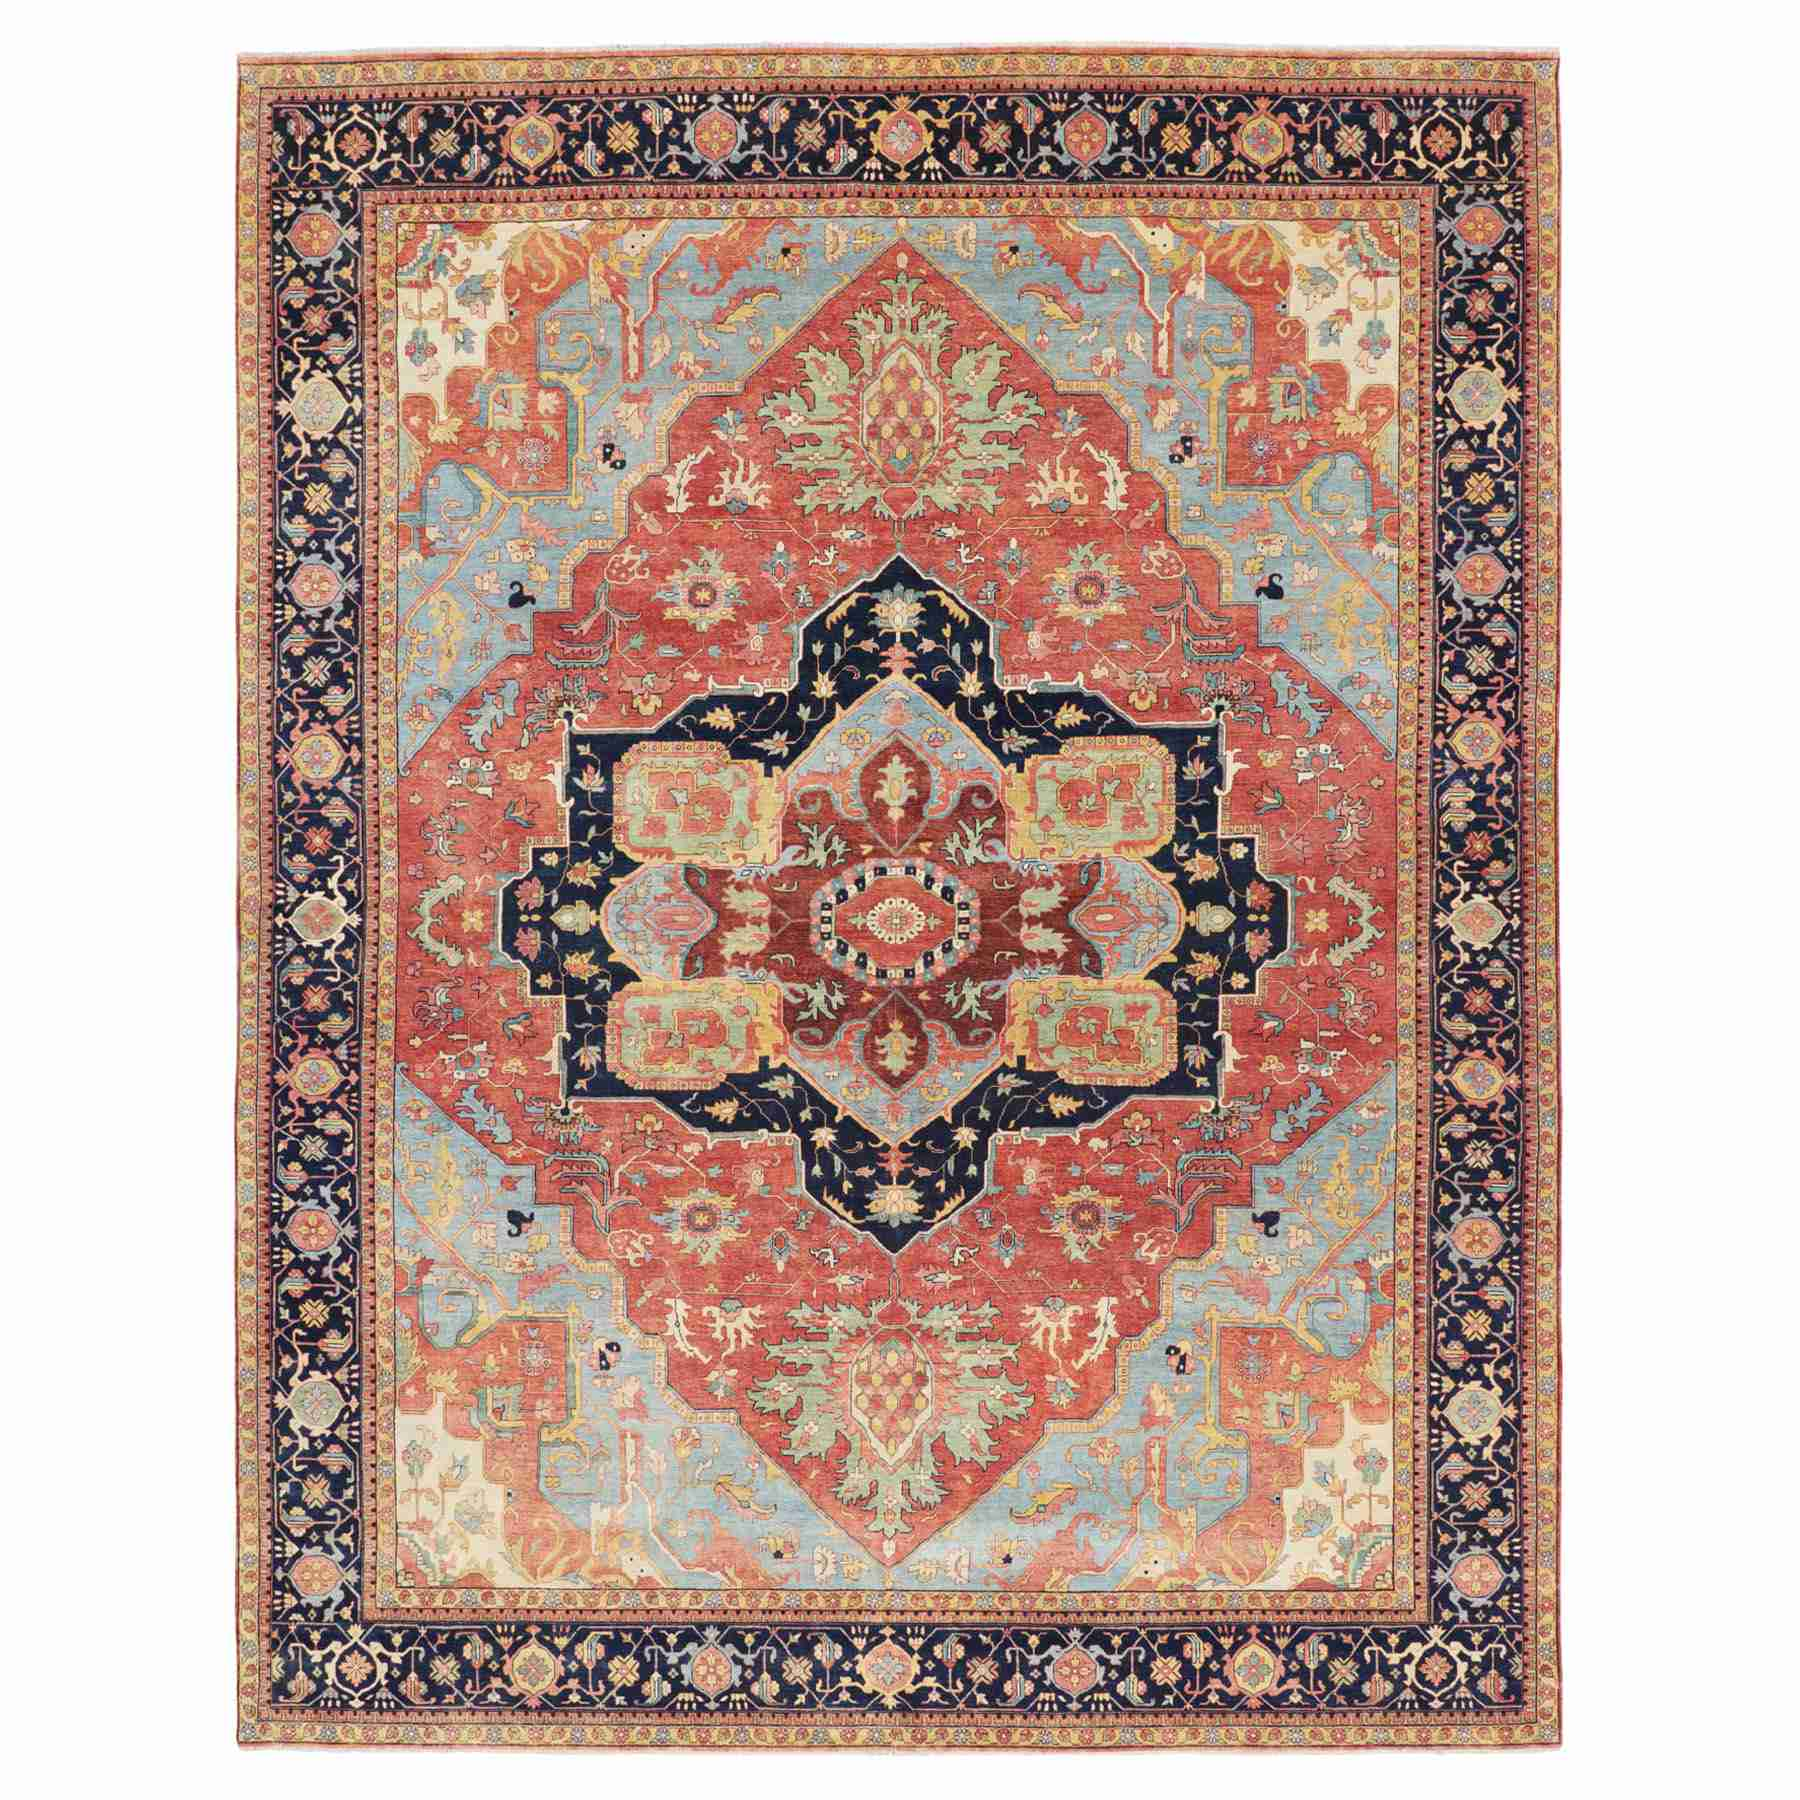 Oversized Antiqued Heriz Re-creation Pure Wool Hand Knotted Oriental Rug